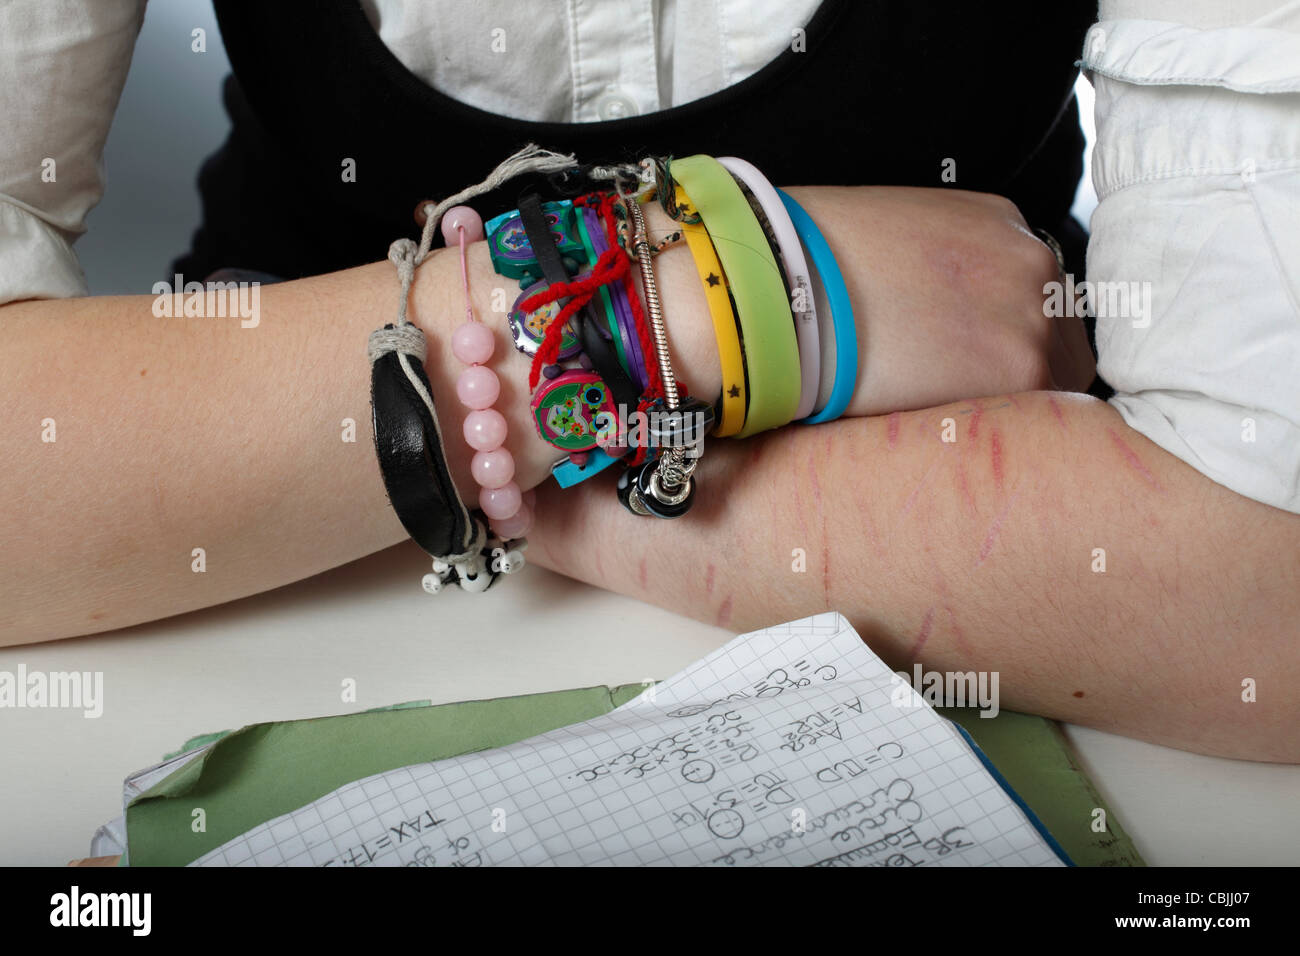 Image Of Self Harm Cuts To The Arm Stock Photo